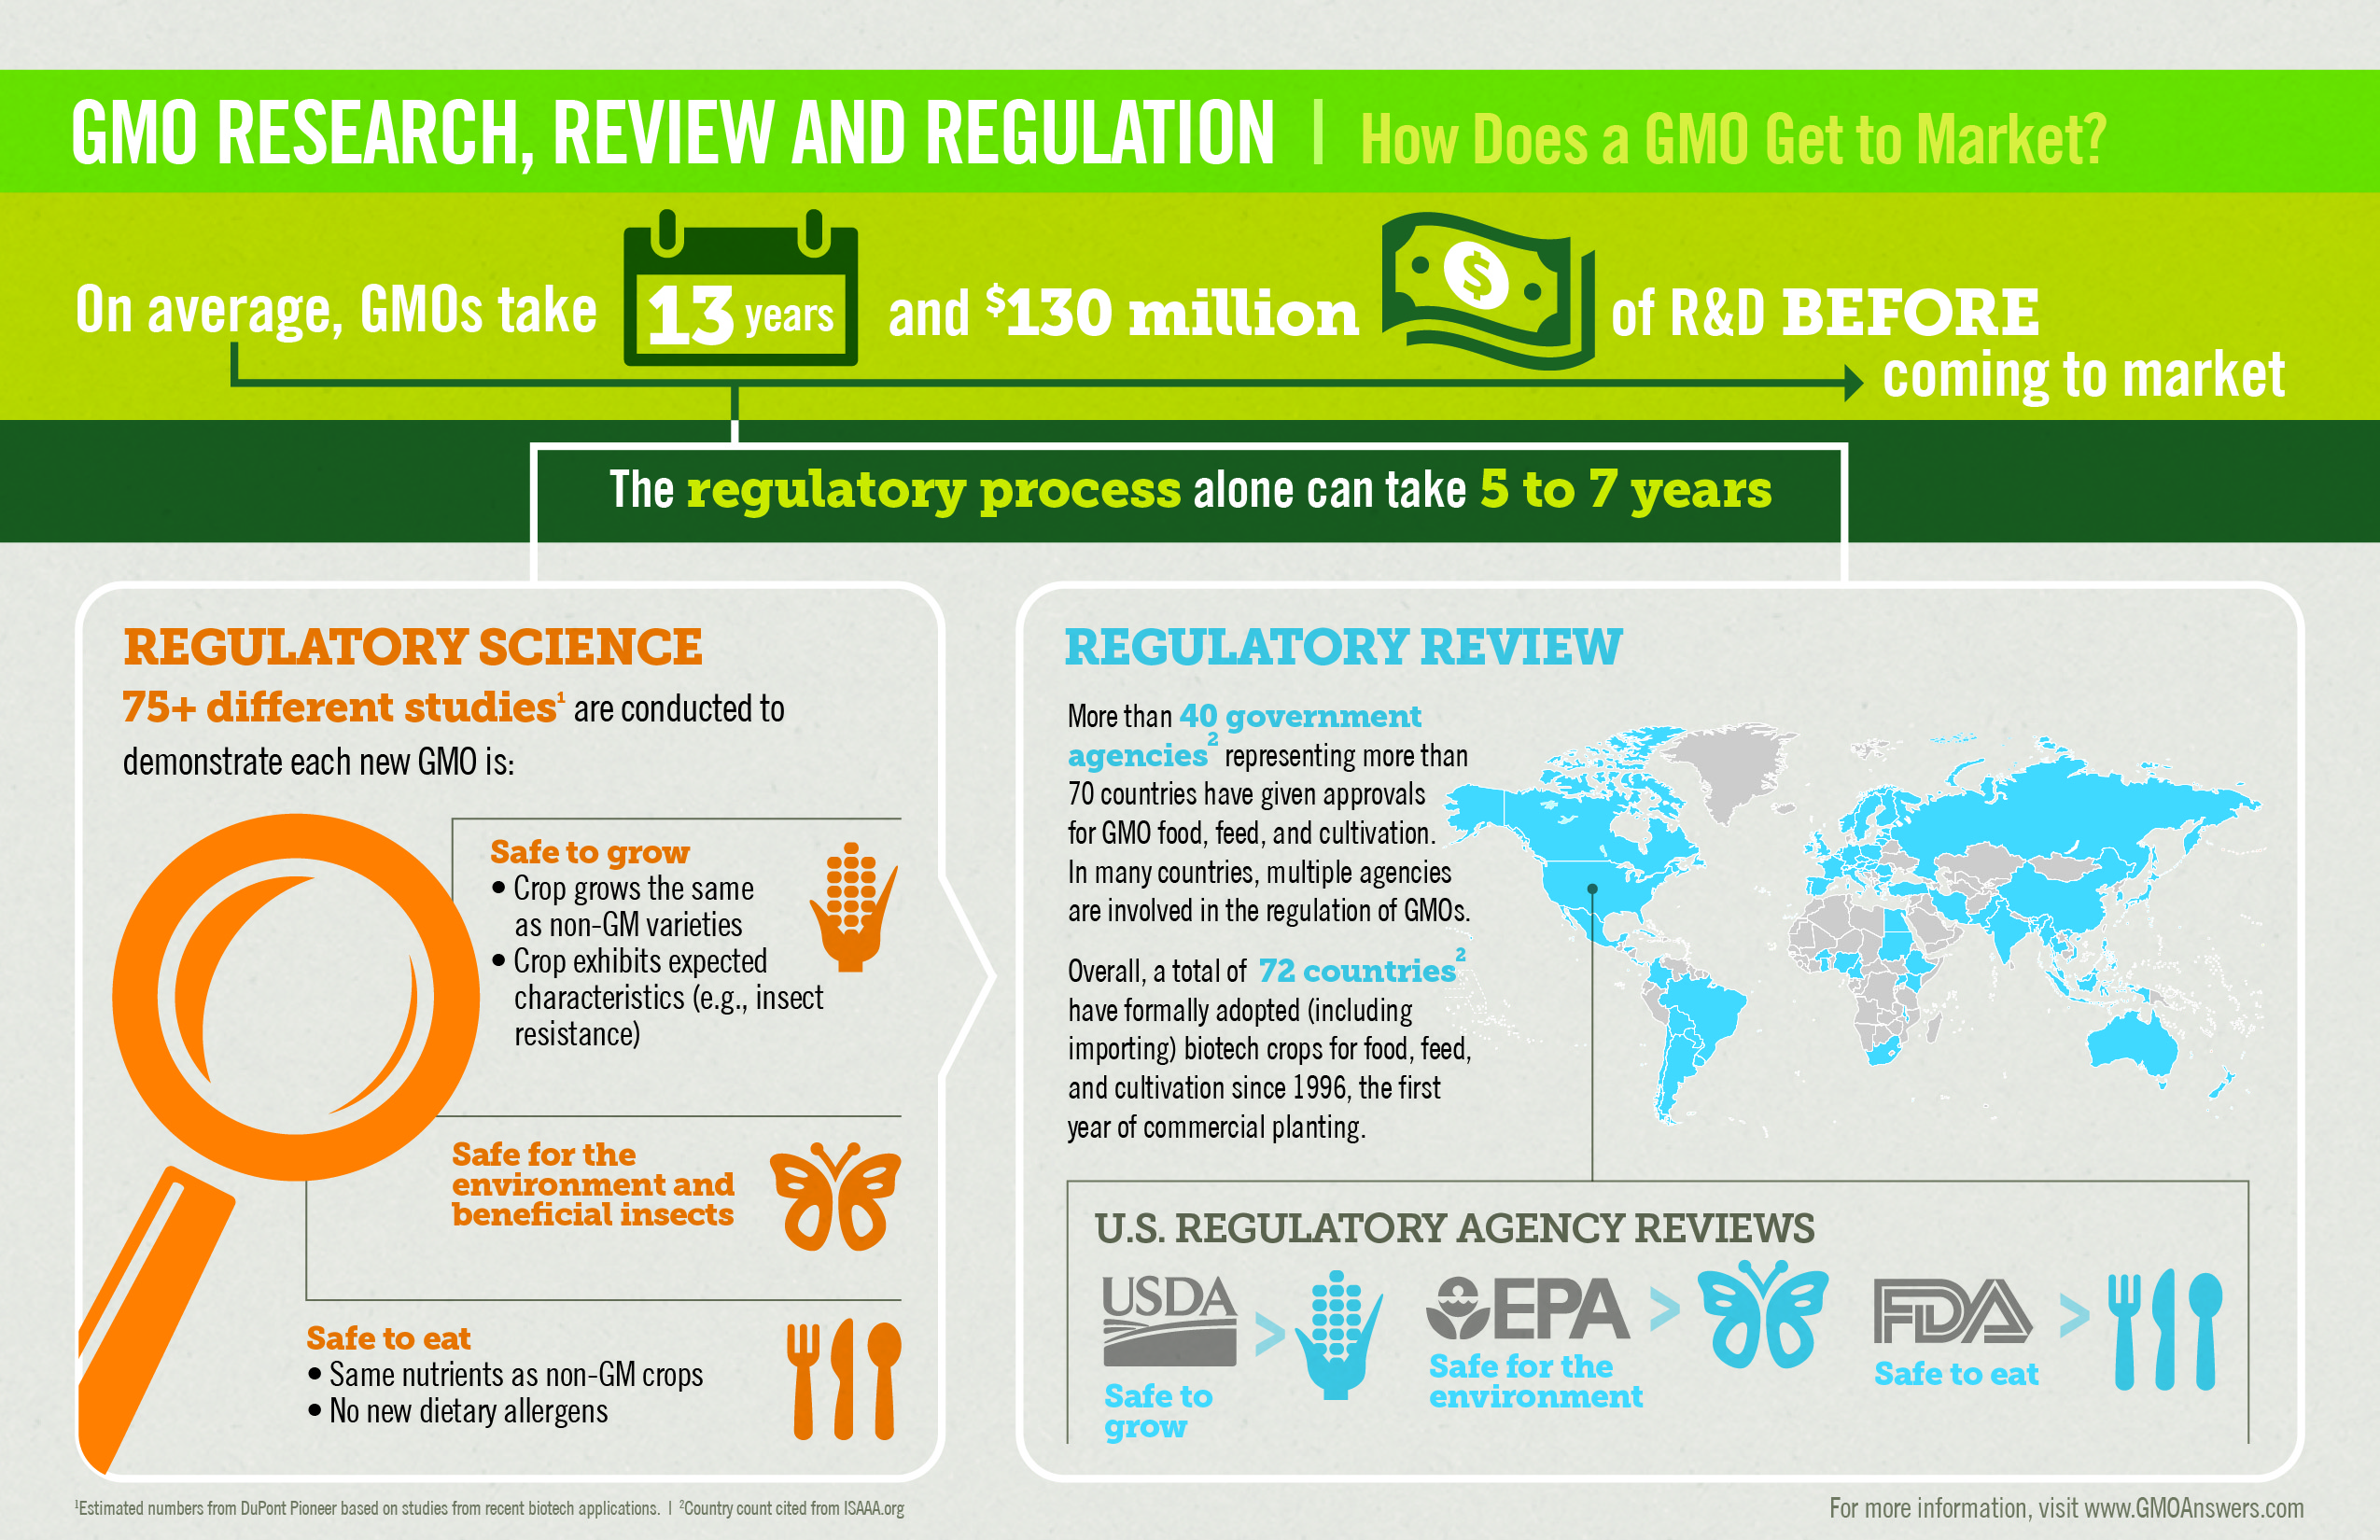 GMO Research Review Regulation